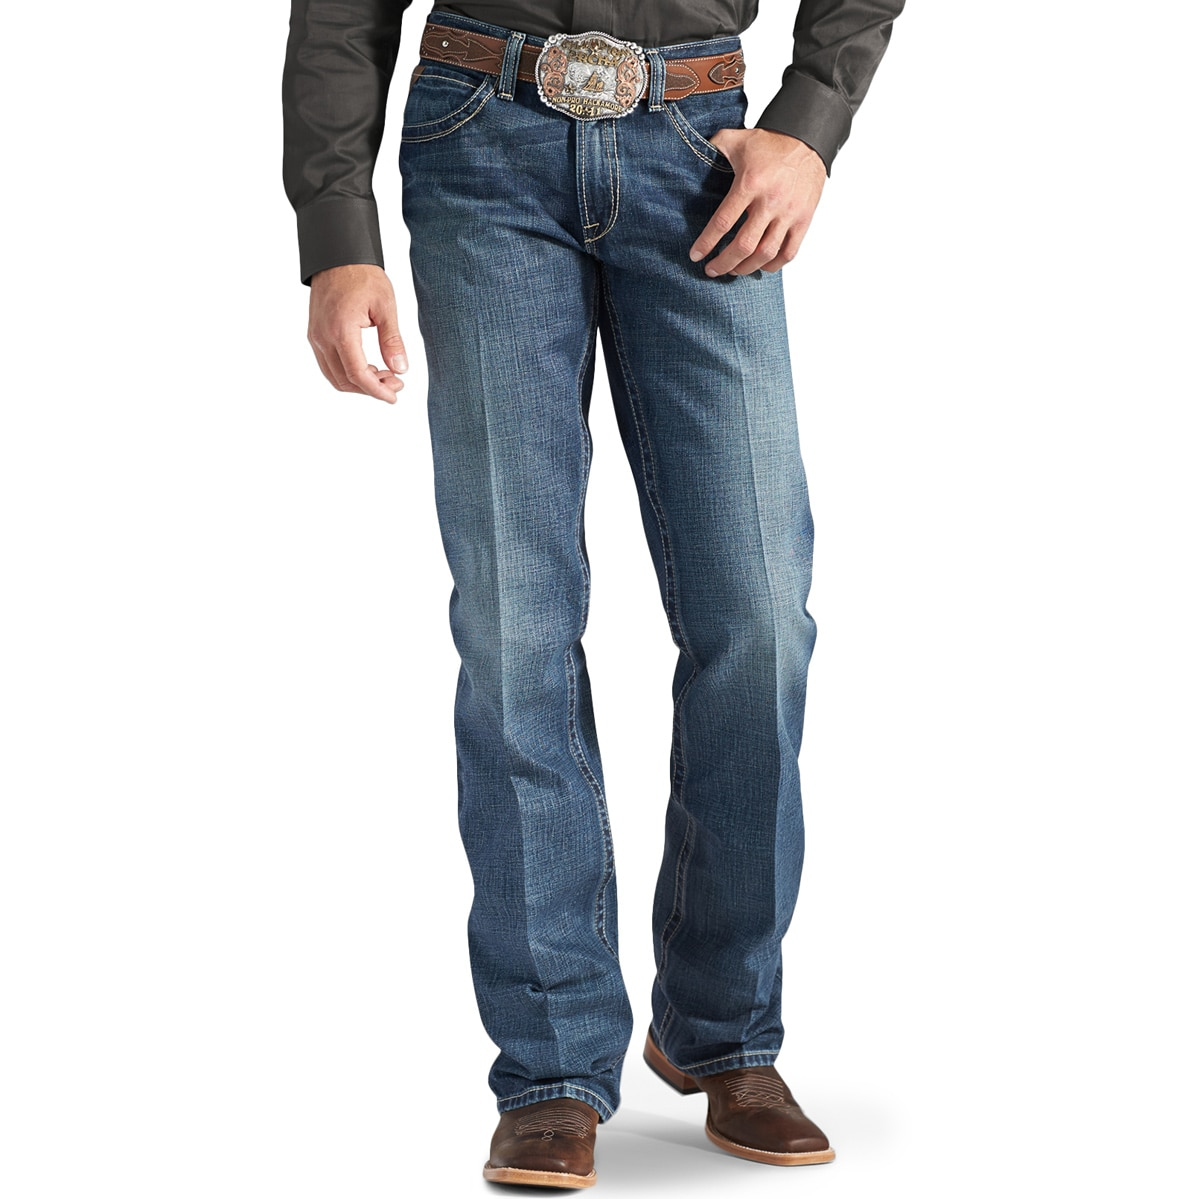 c3d5f54b901 Ariat® Men s M4 Low Rise Boot Cut Gulch Boundary Jeans